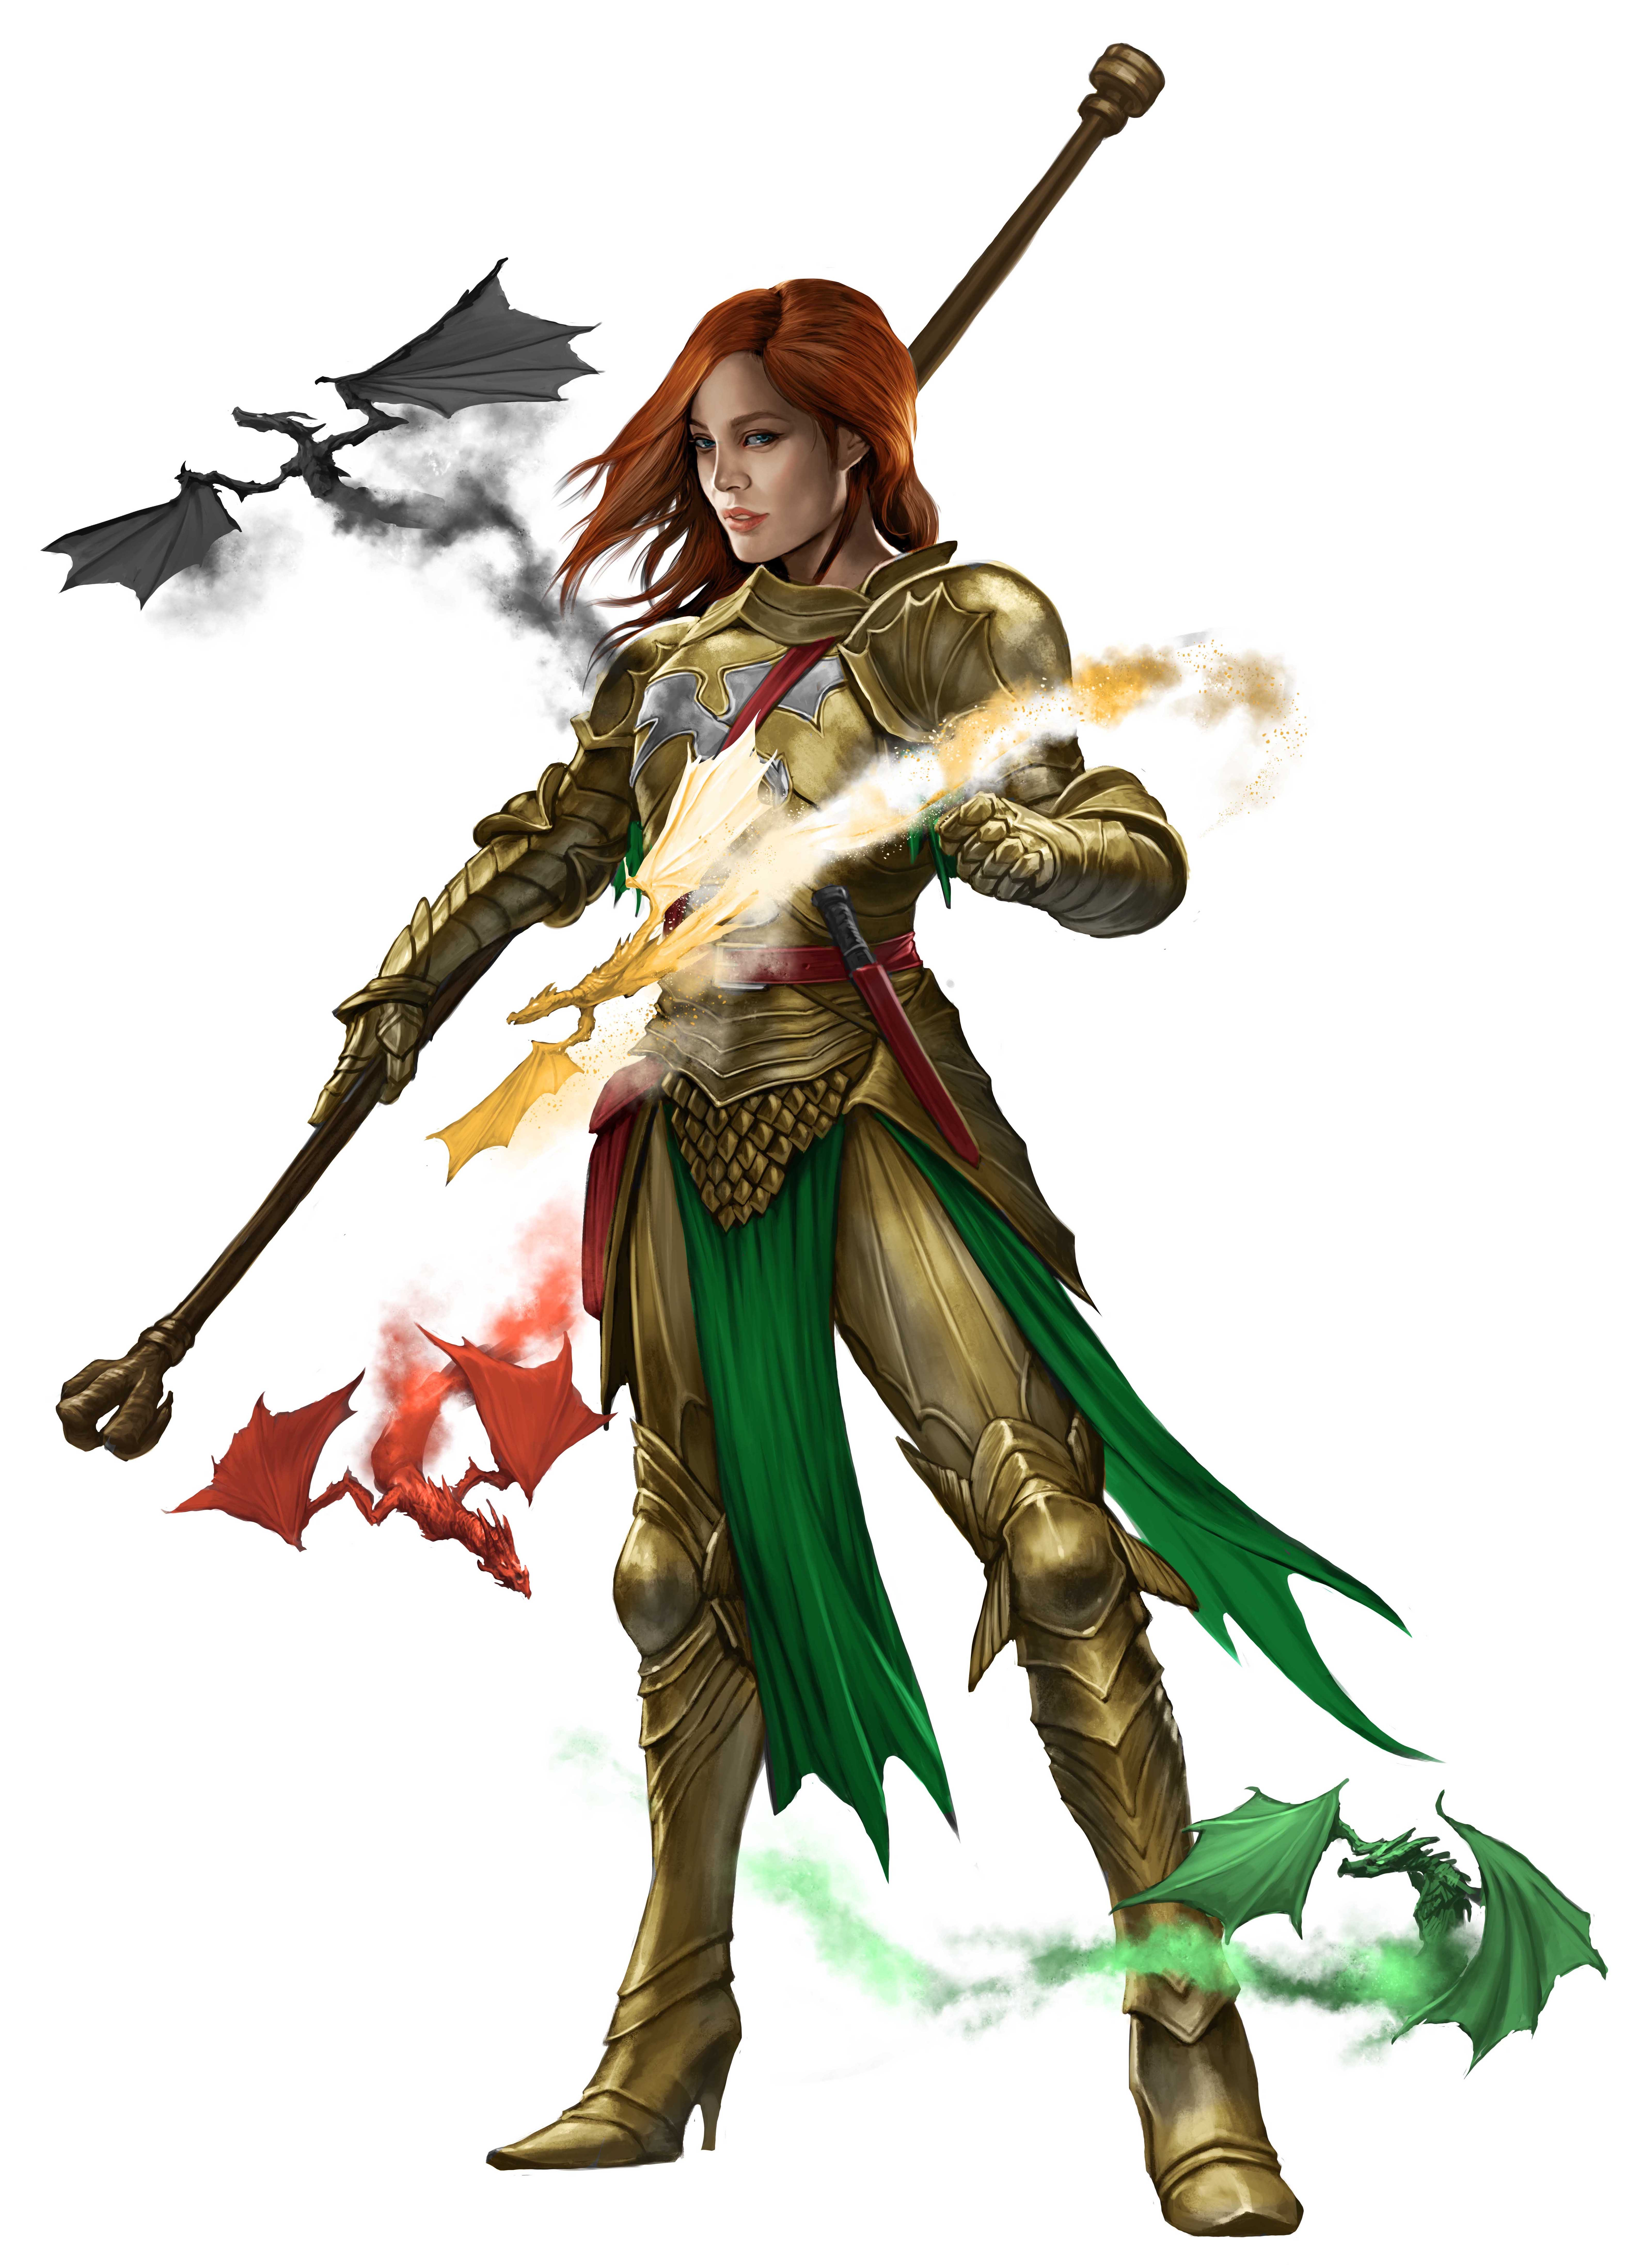 An armored woman is surrounded by several tiny dragons, each of a different type. She bears the religious symbol of Apsu on her armor.